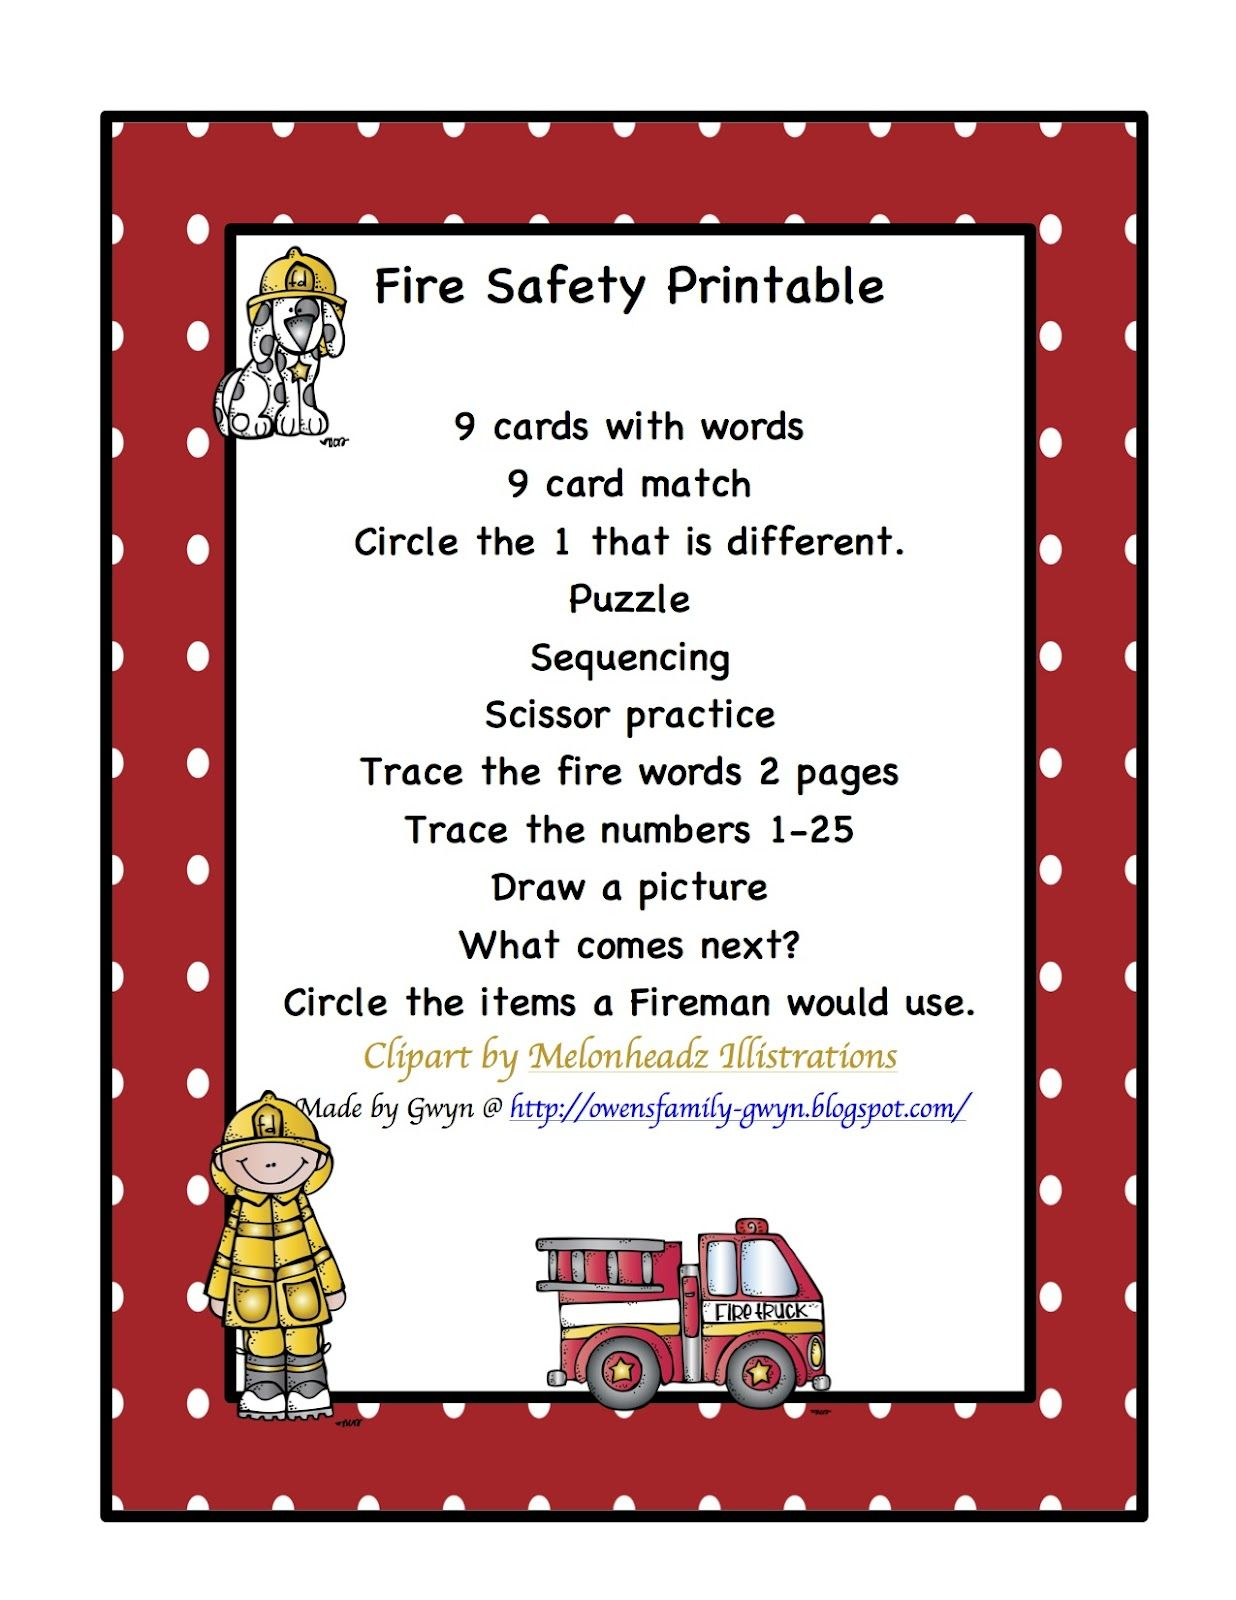 Preschool Printables Fire Safety Printable